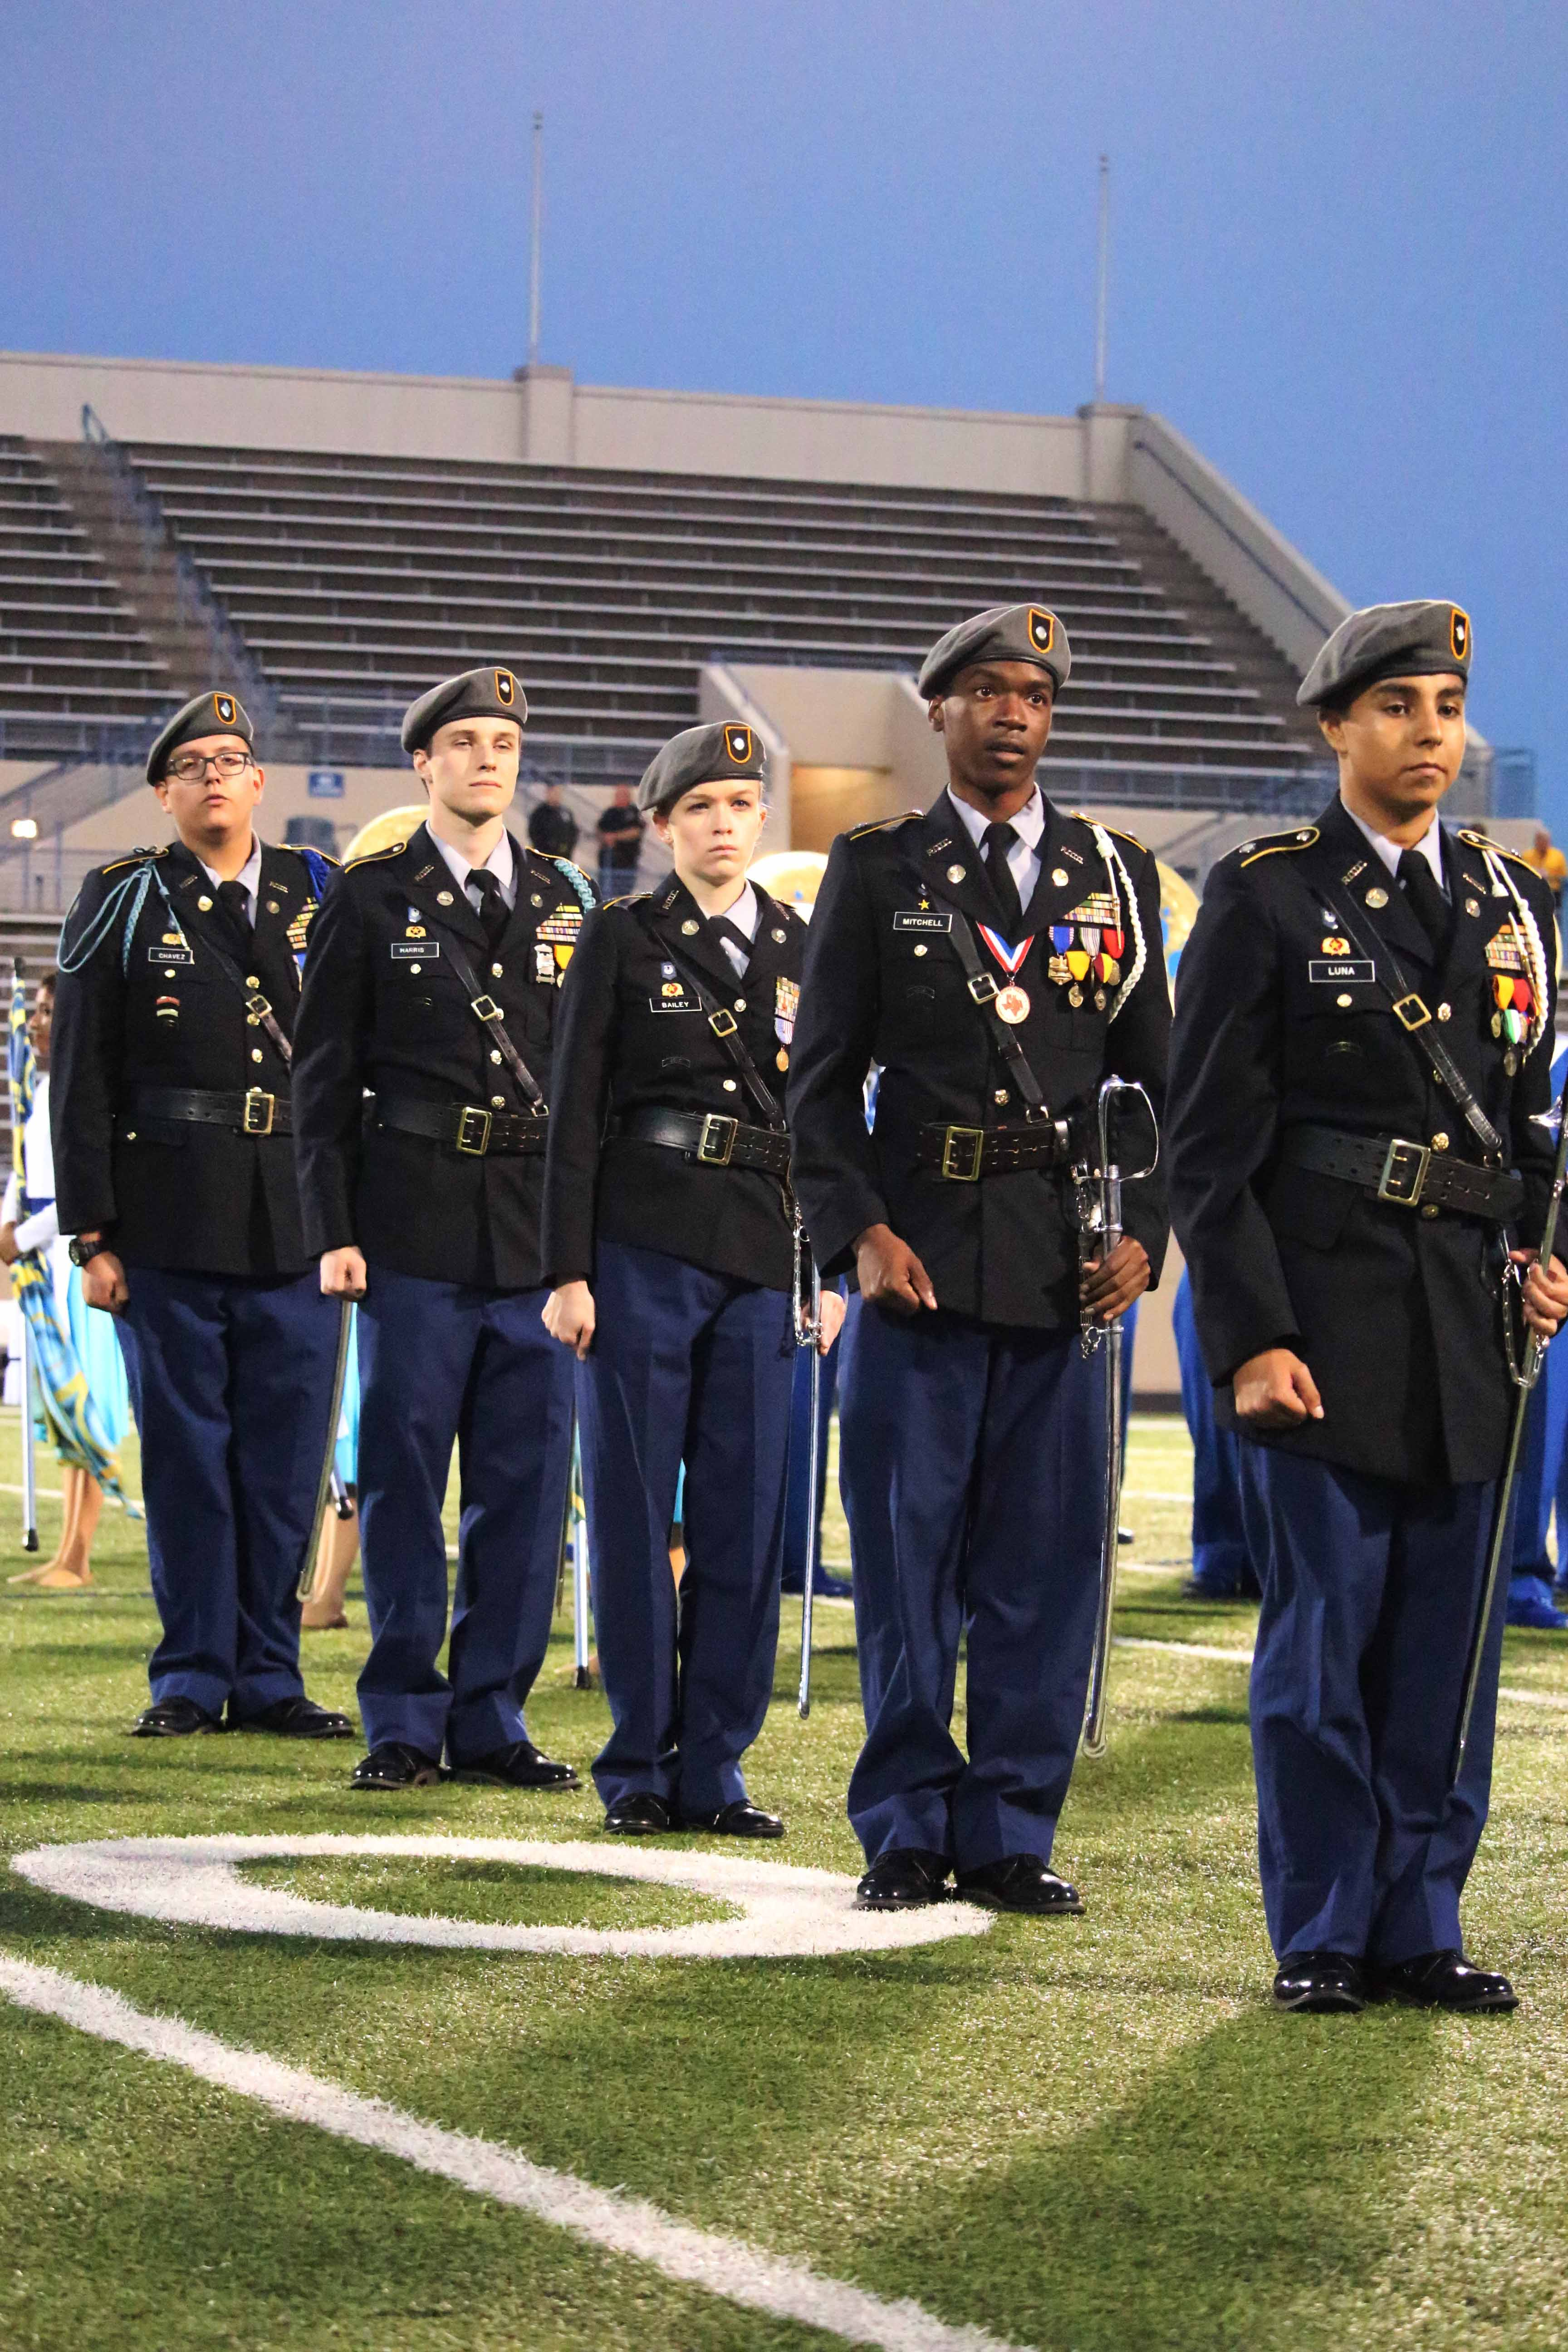 Lining up at the Homecoming game, students in JROTC stand tall.